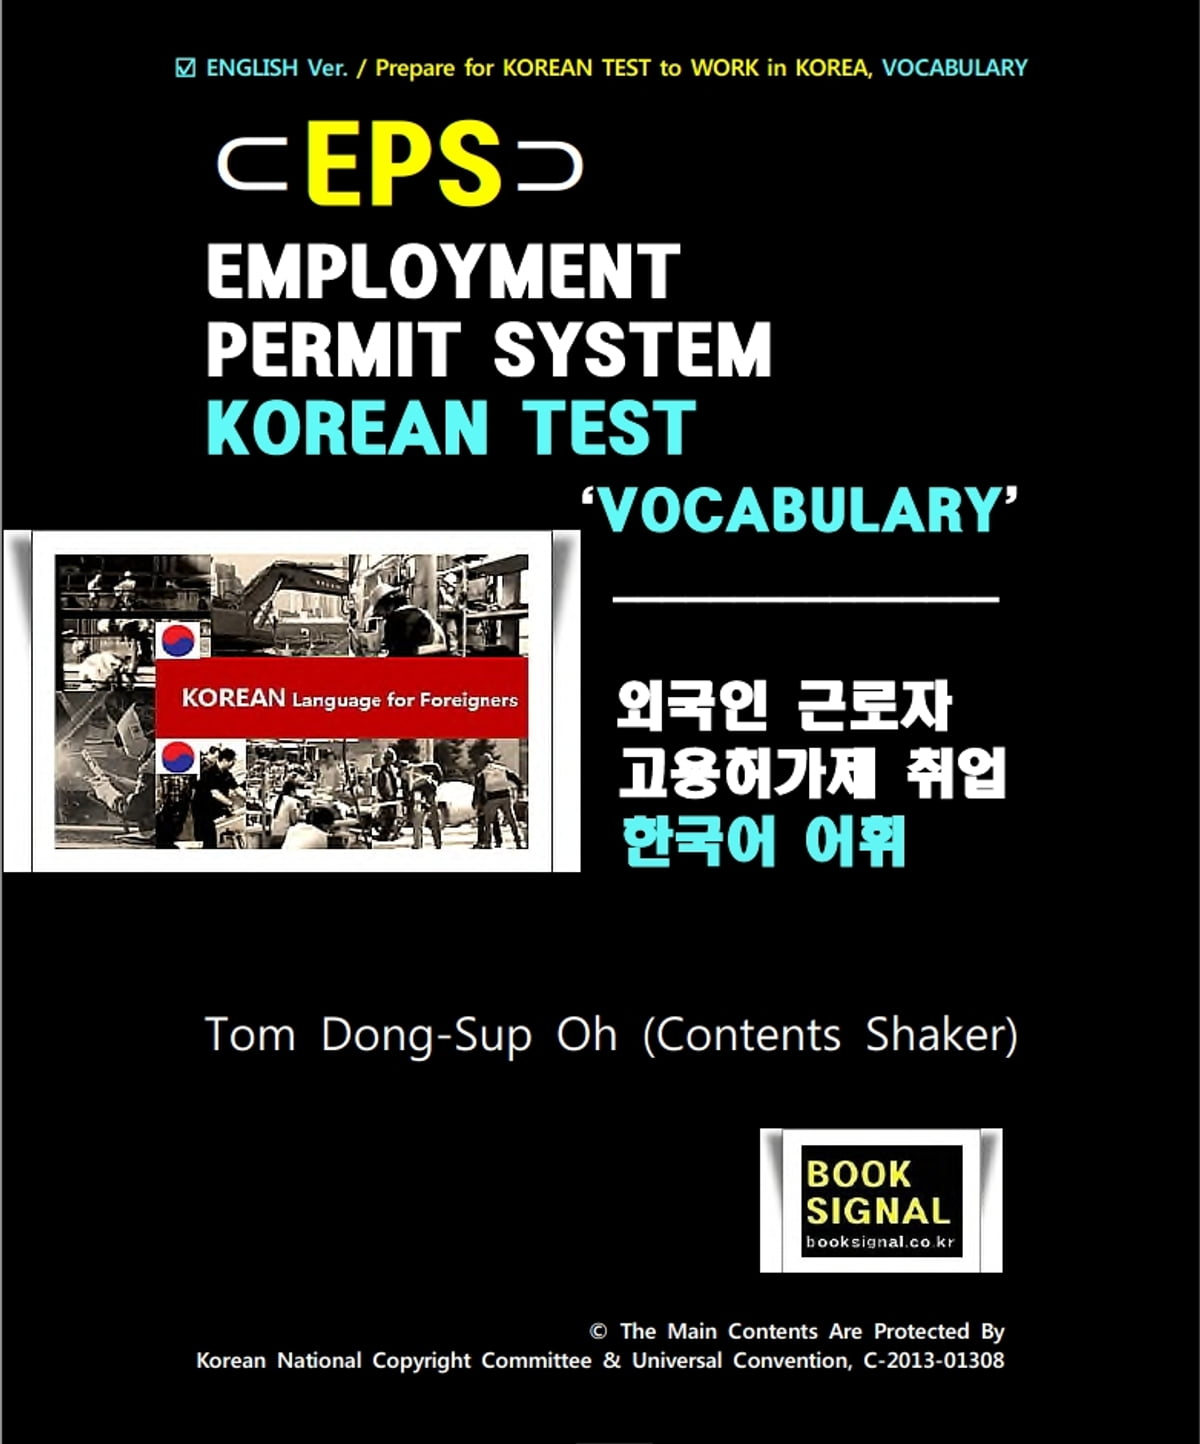 EPS (Employment Permit System) KOREAN Test / VOCABULARY eBook by Tom  Dong-Sup Oh (Contents Shaker) - 9791185669755 | Rakuten Kobo